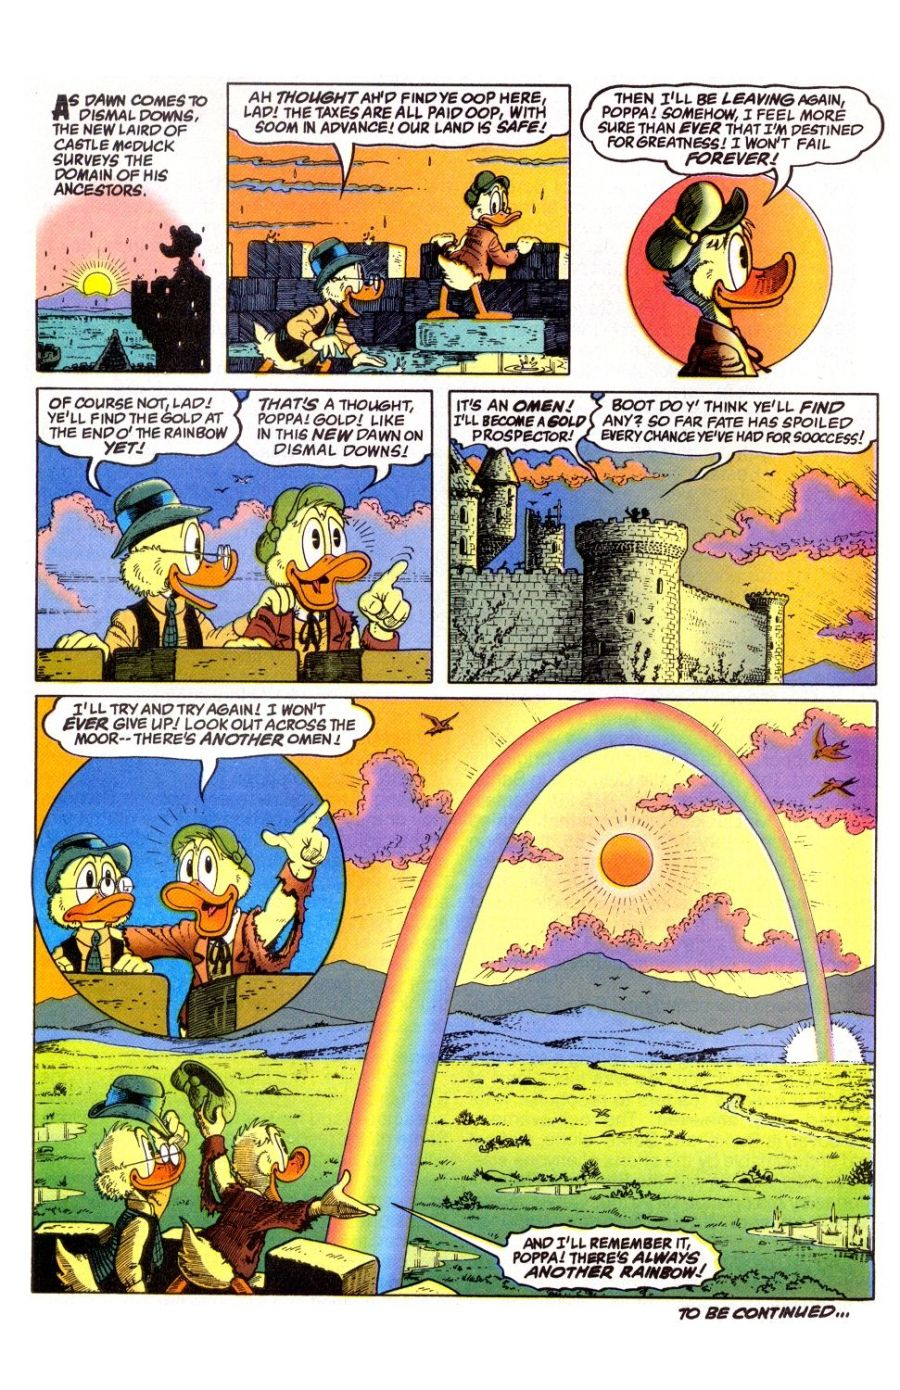 the-life-and-times-of-scrooge-mcduck-05-15